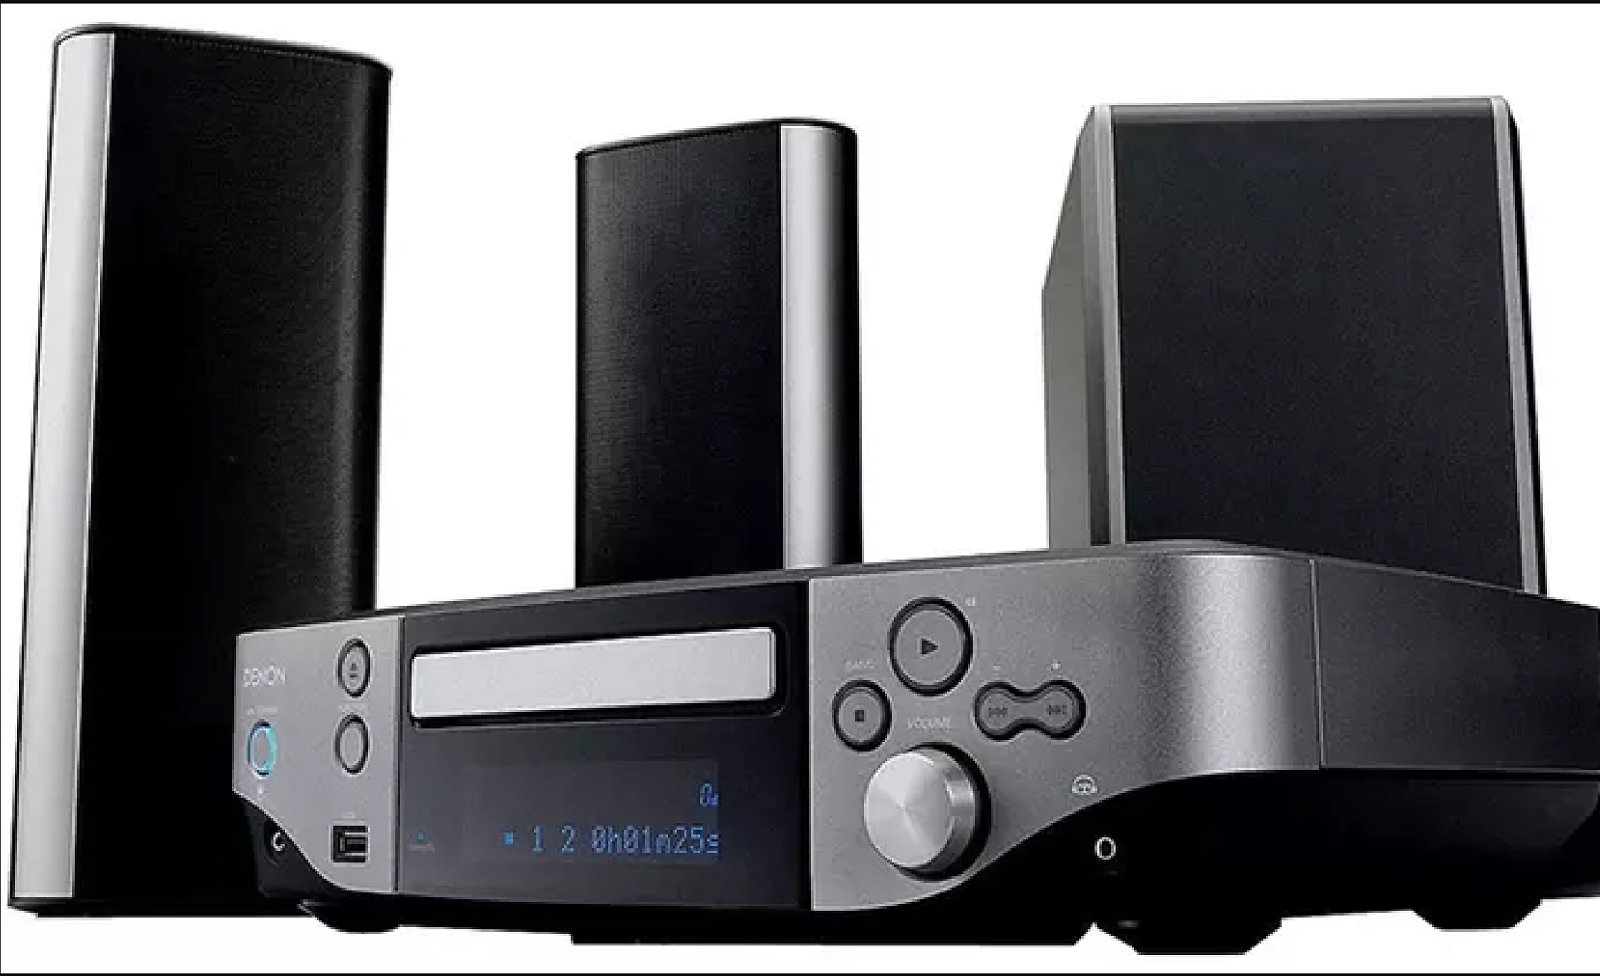 Denon DVD and Home Entertainment System with Two Floor Speaker Stands